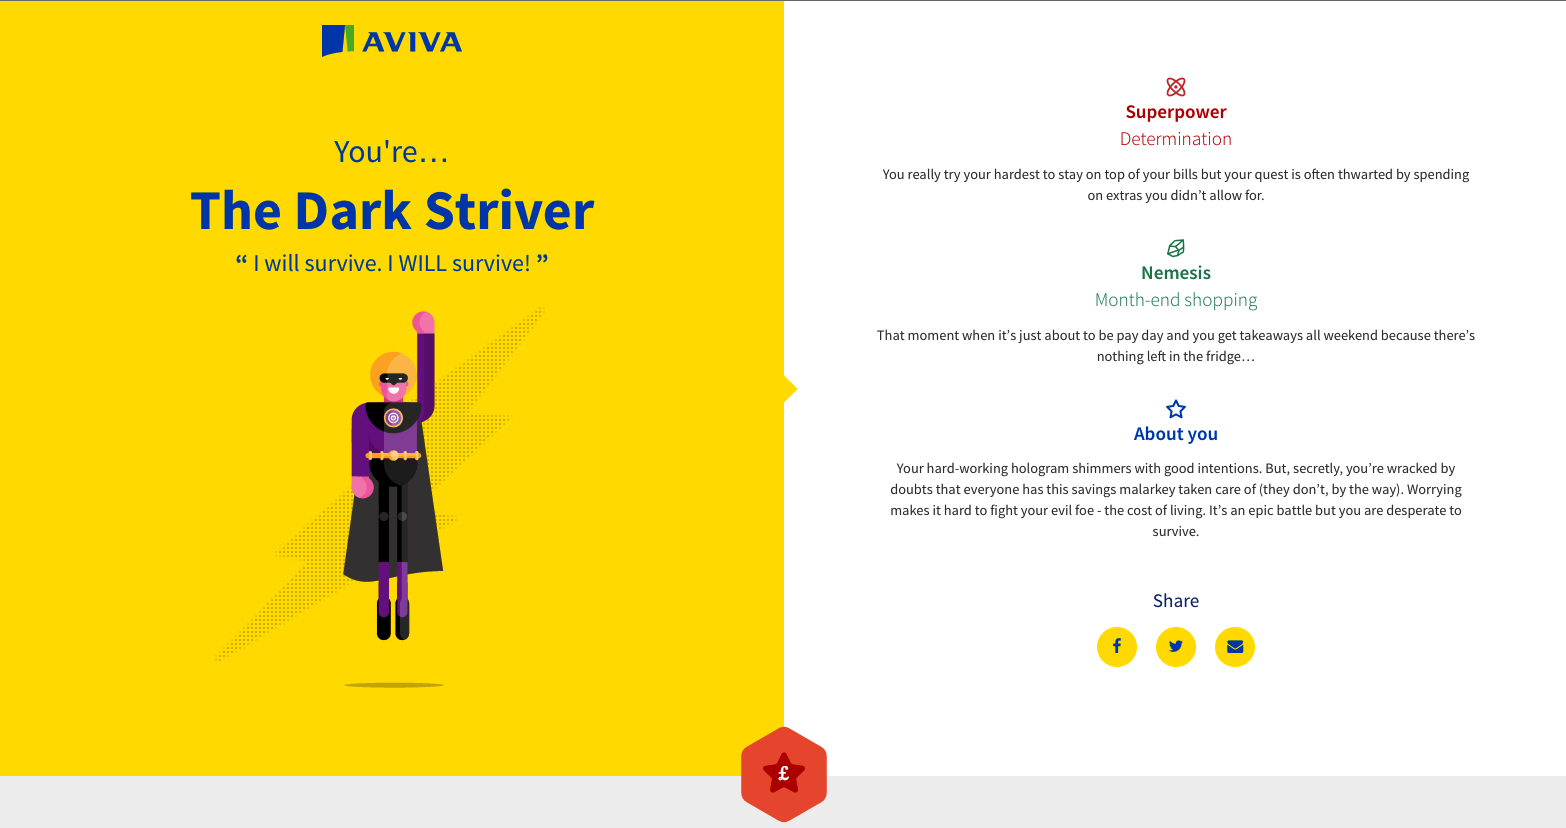 save smarter the aviva financial personality tool oh so amelia then based on your responses you will be shown your financial personality type which is characterised by a superhero as you can see apparently i am the